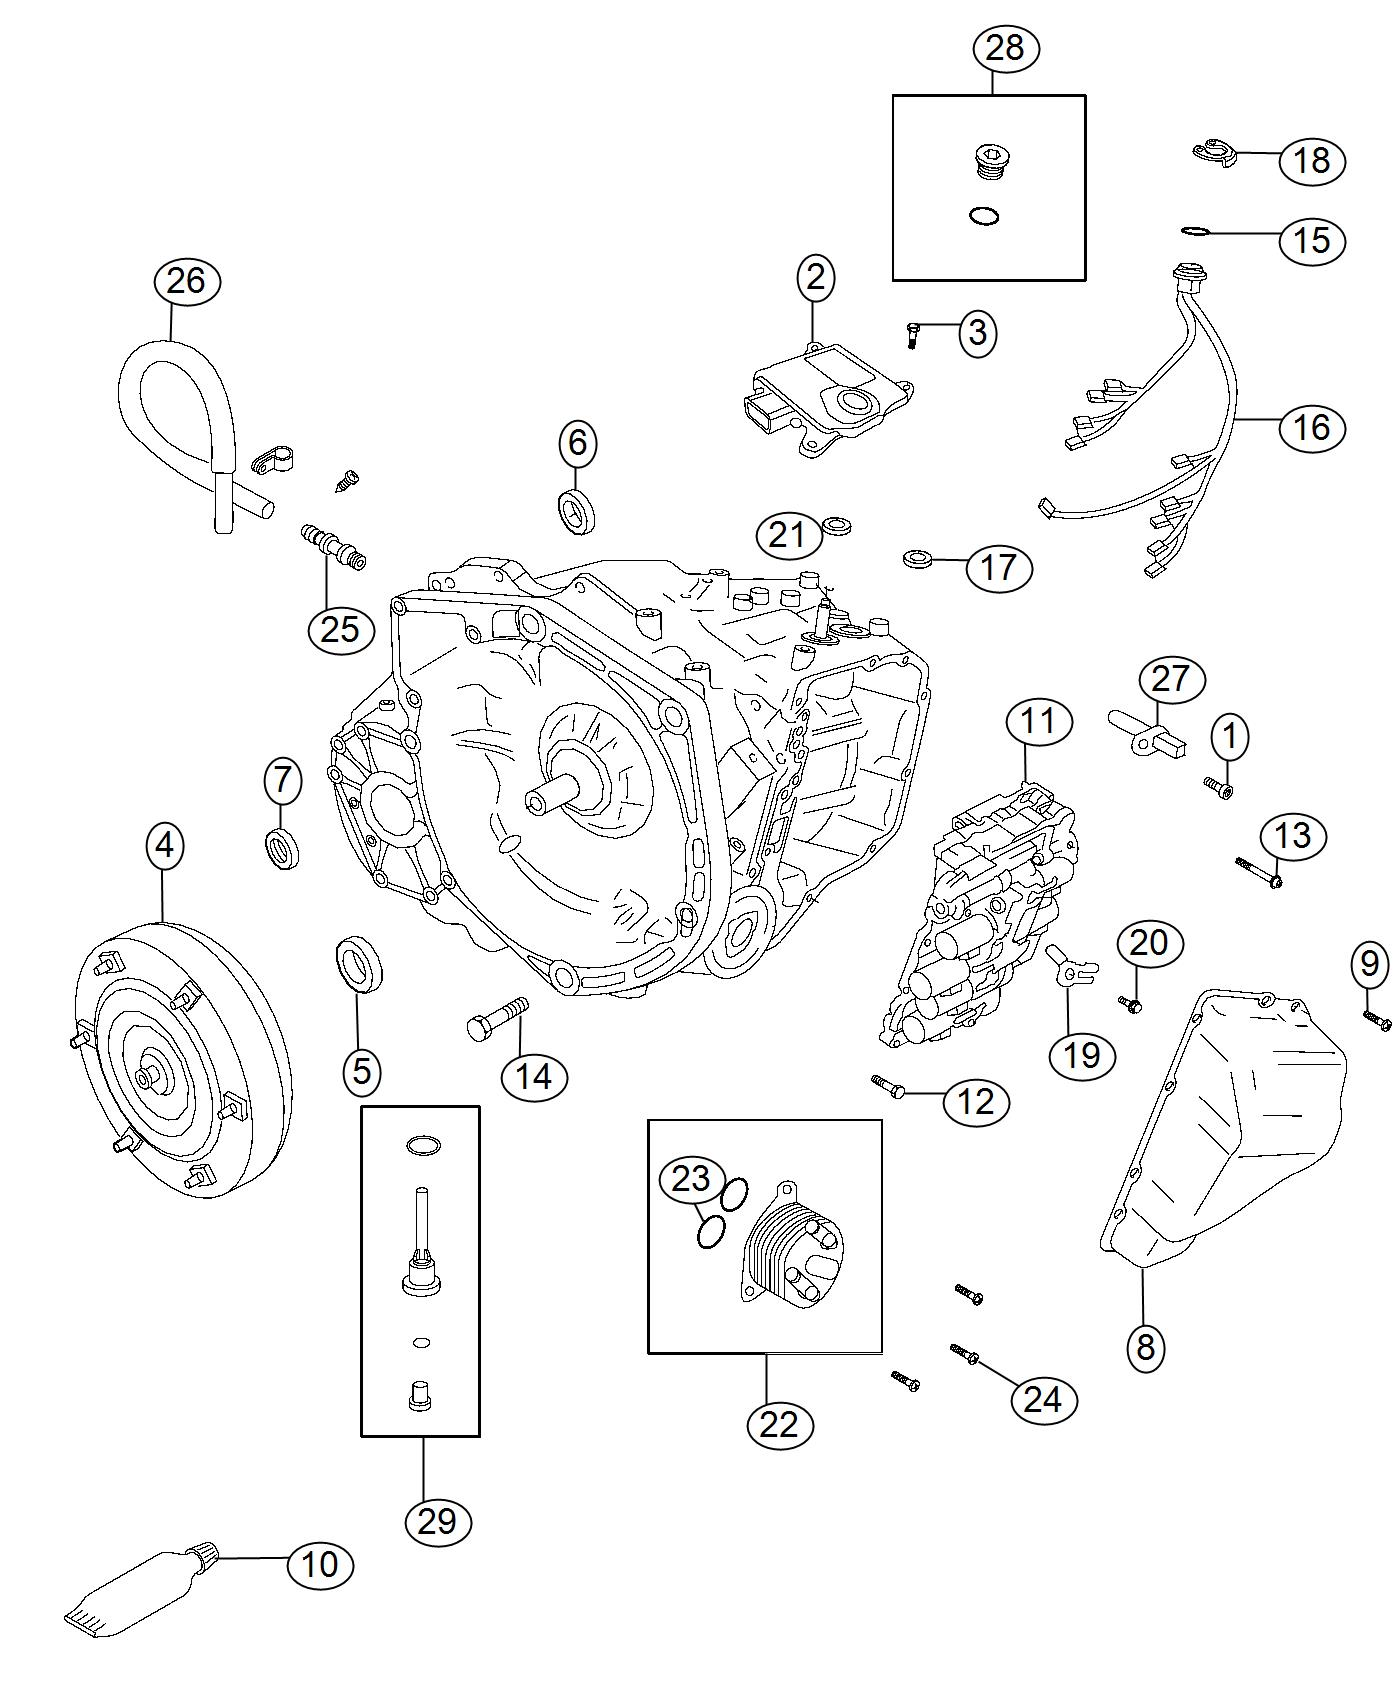 Jeep Compass Wiring  Transmission  Export   Stop